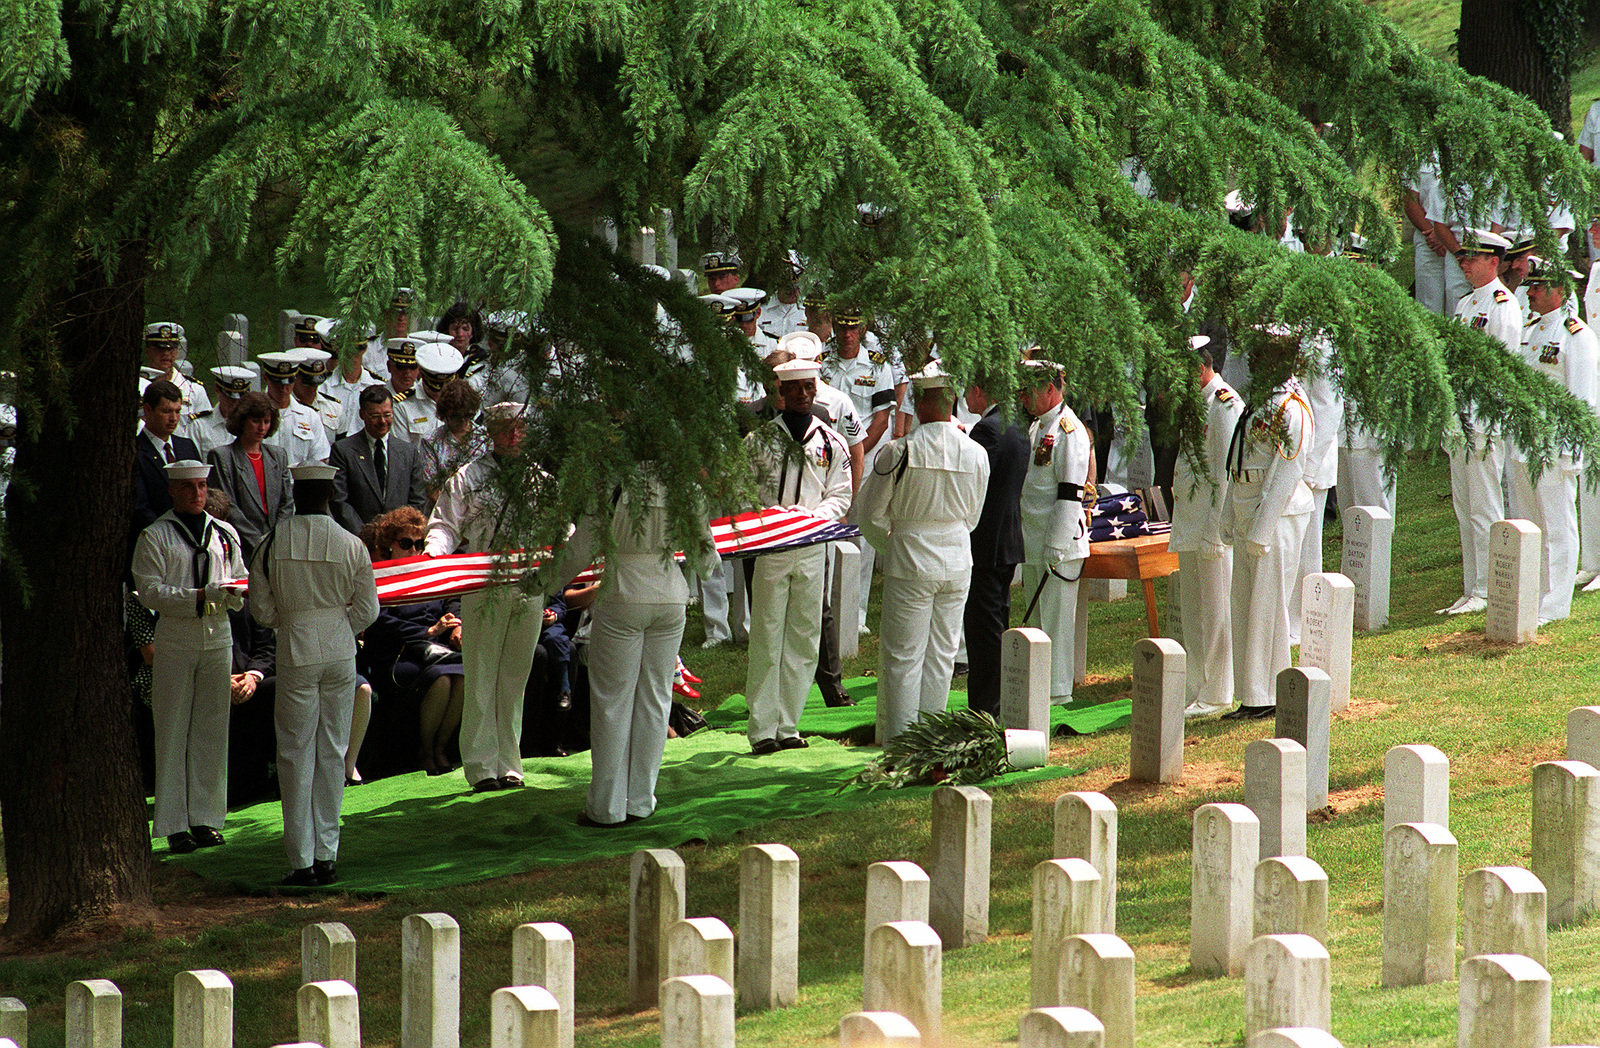 Members of the Navy Ceremonial Guard fold the flag to be presented to the widow of LT. CMDR. Barry T. Cooke of Attack Squadron 36 (VA-36) during a memorial service at Arlington National Cemetery. Cooke and his bombardier/navigator, LT. Patrick K. Connor, were killed when their A-6E Intruder aircraft was shot down on February 2, 1991, during Operation Desert Storm